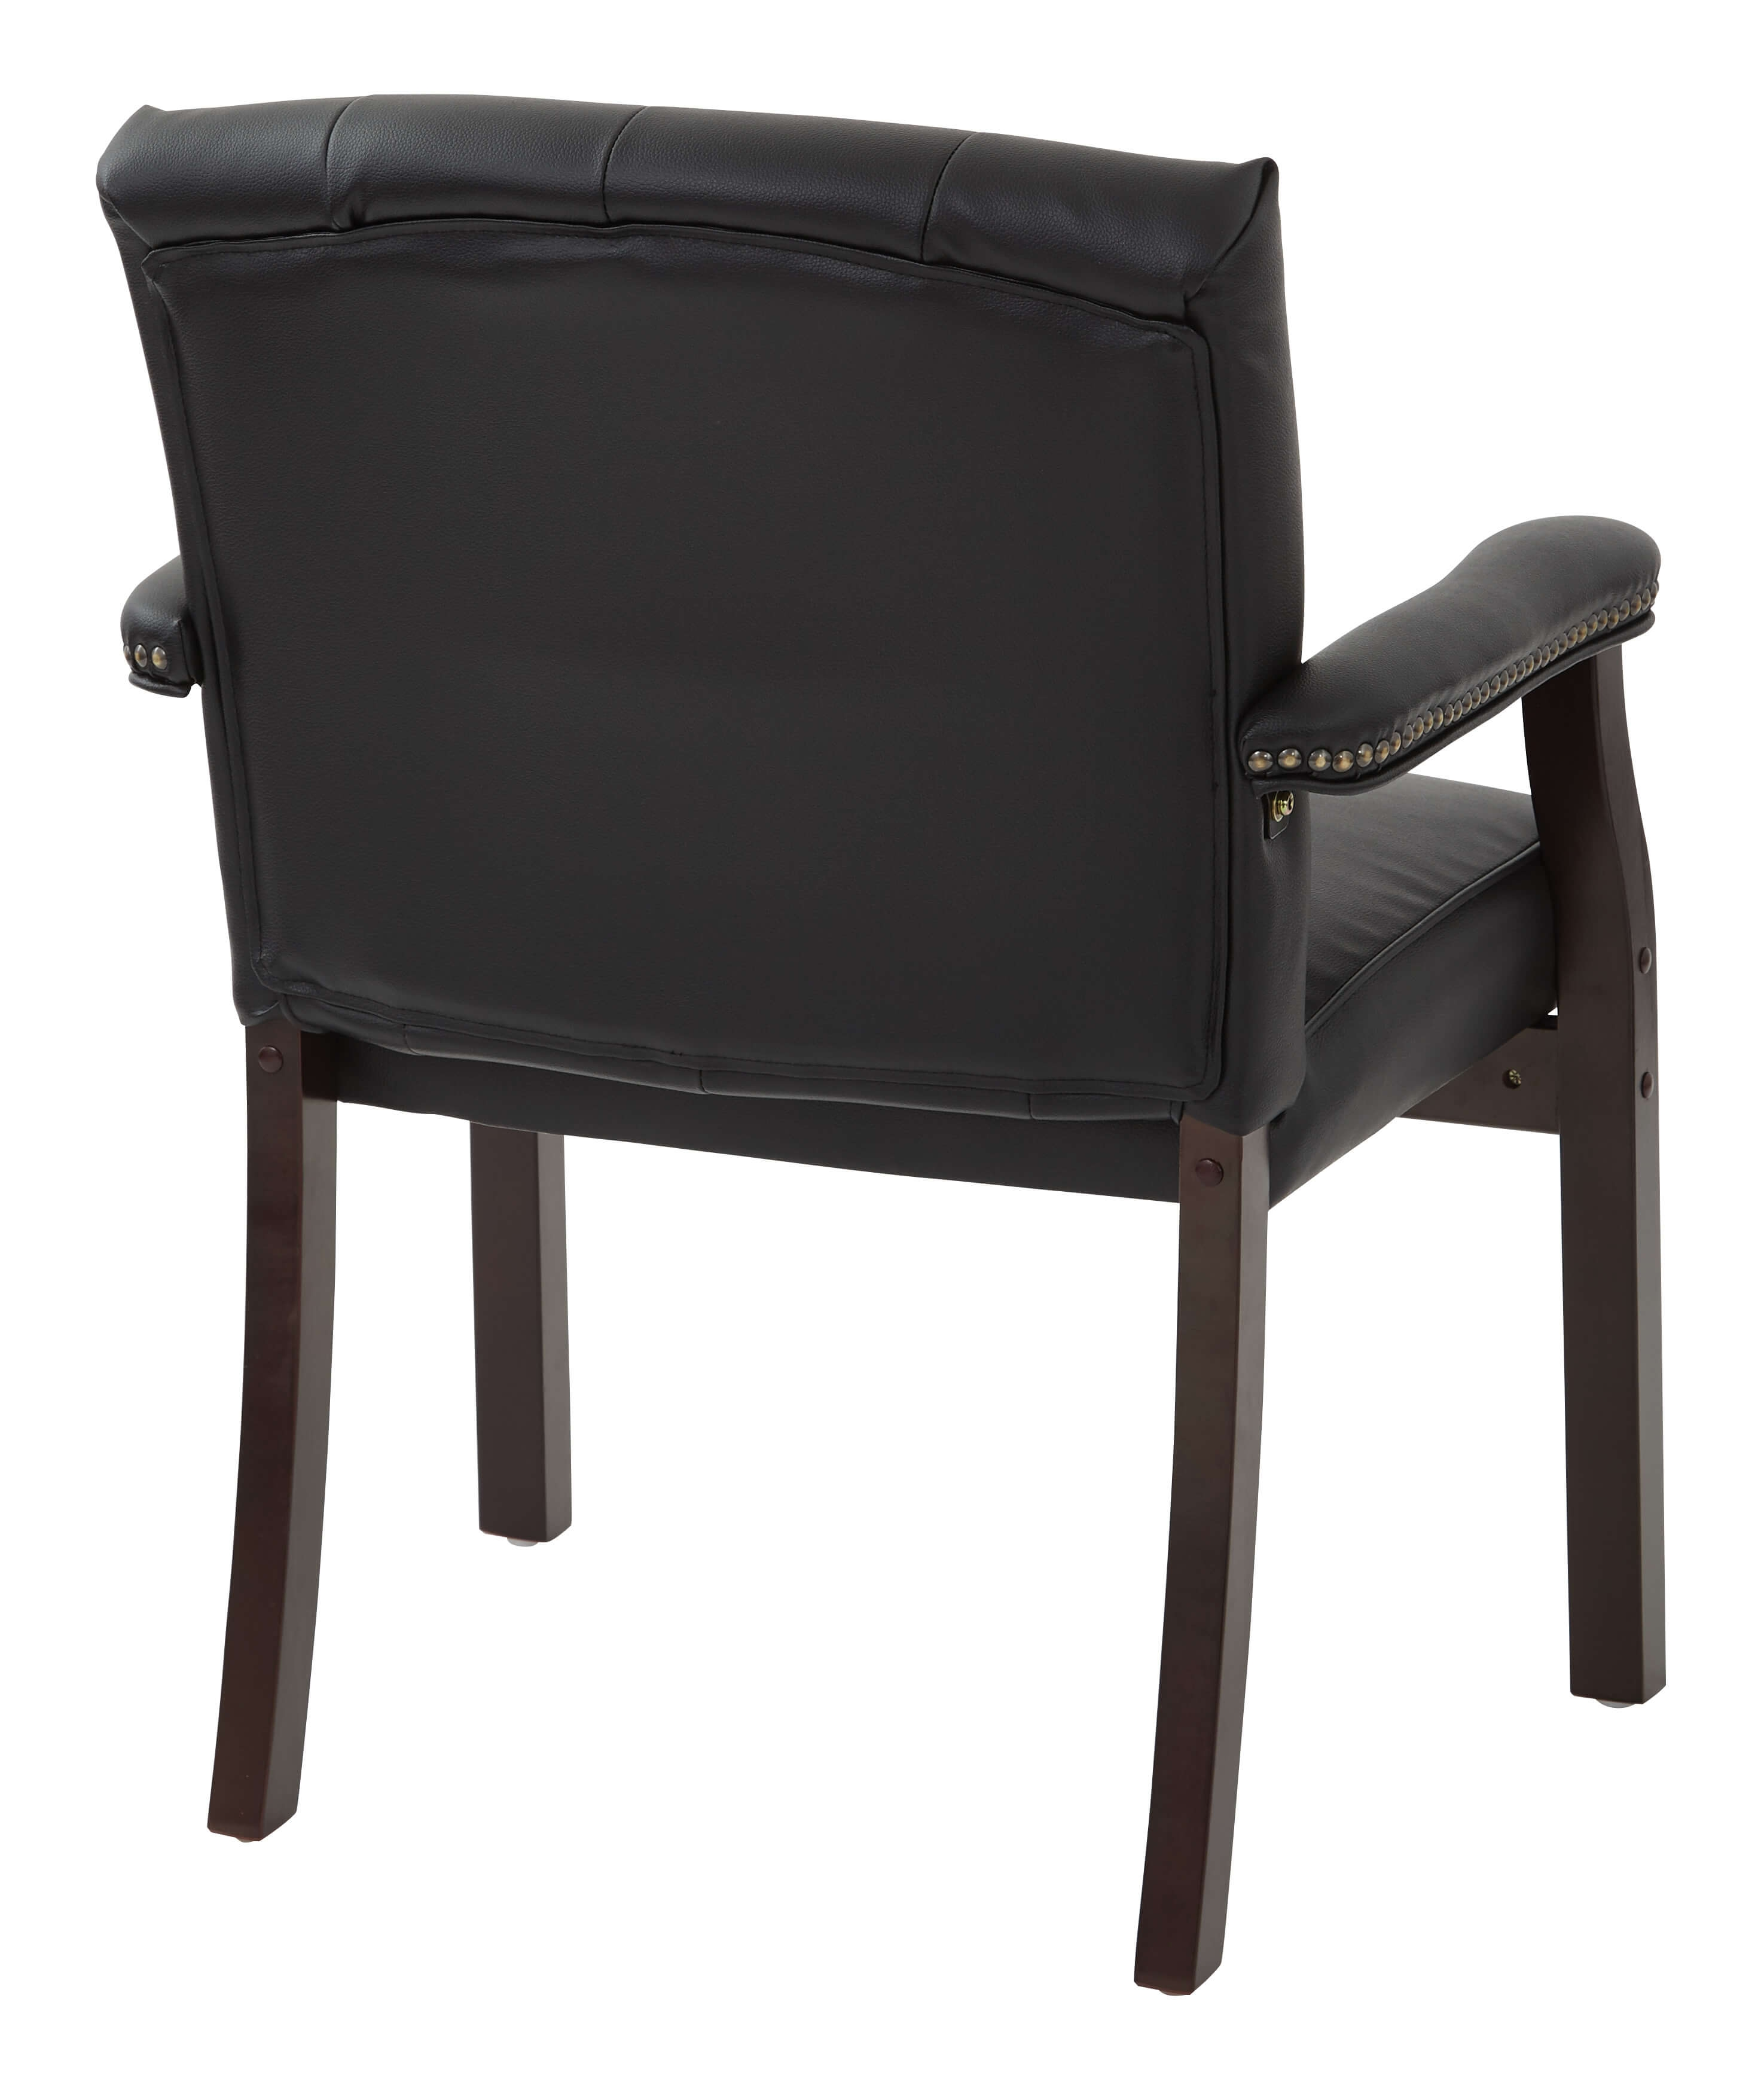 Lounge chair for office back